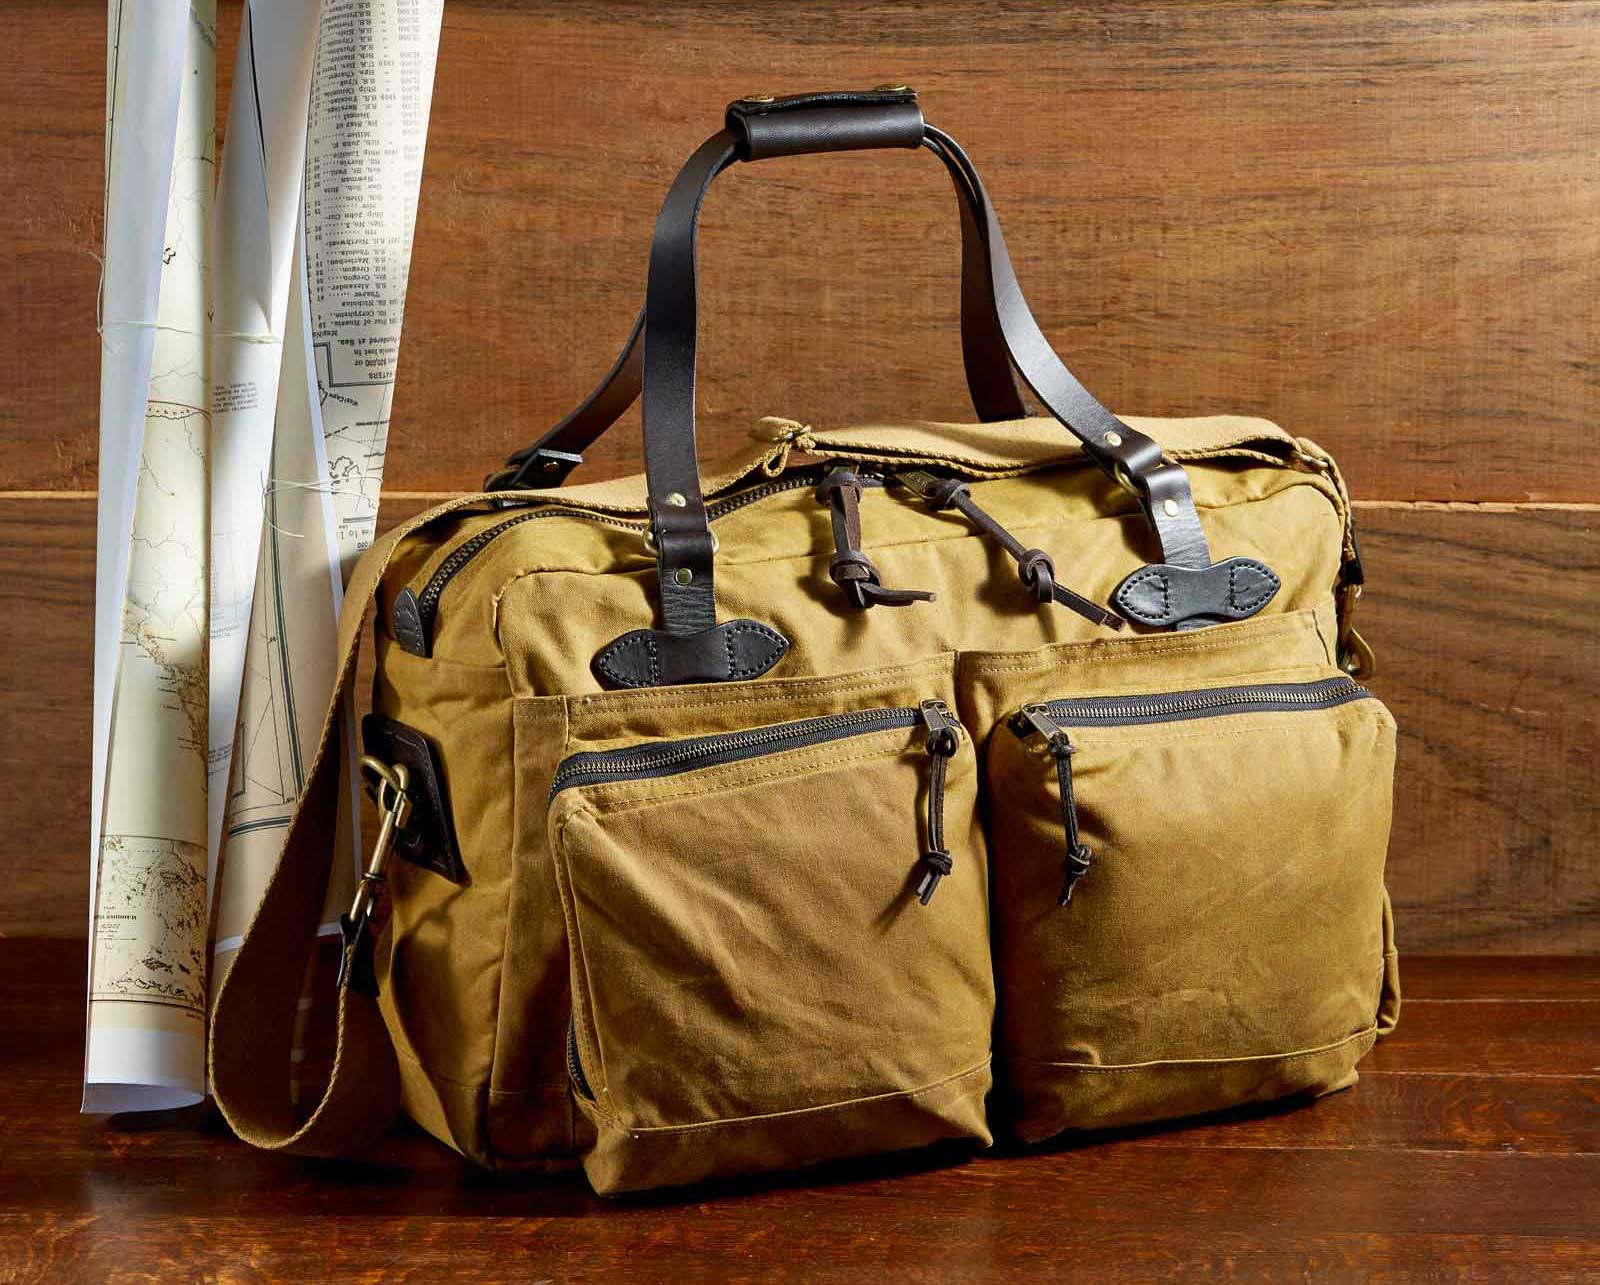 Filson 48-Hour-Duffle perfect bag for a long weekend